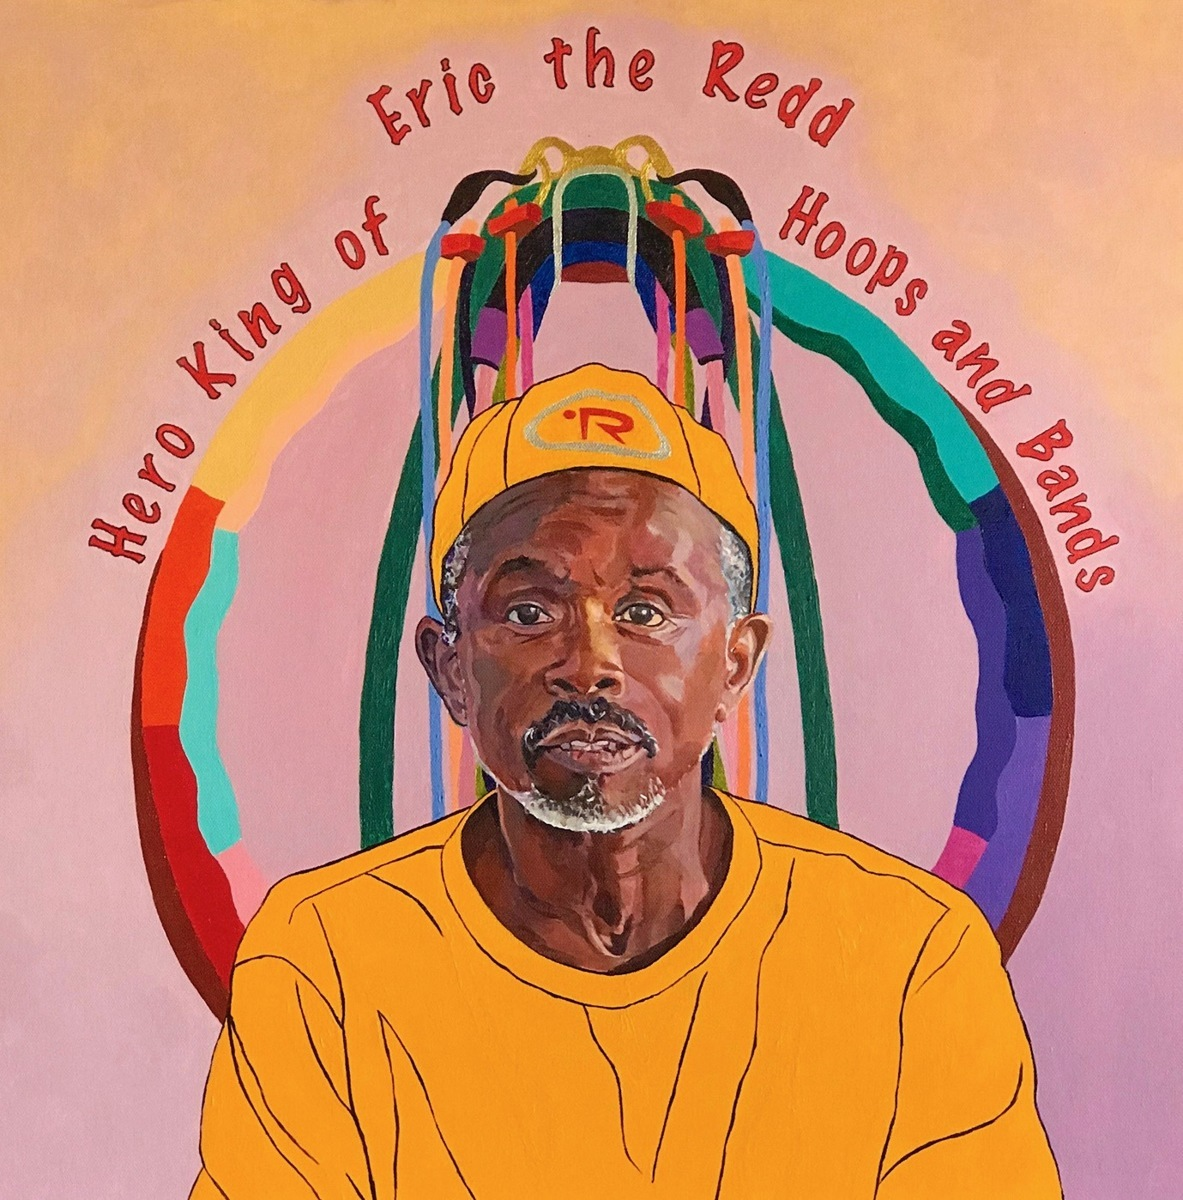 Eric The Redd: Hero King of Hoops and Bands (large view)